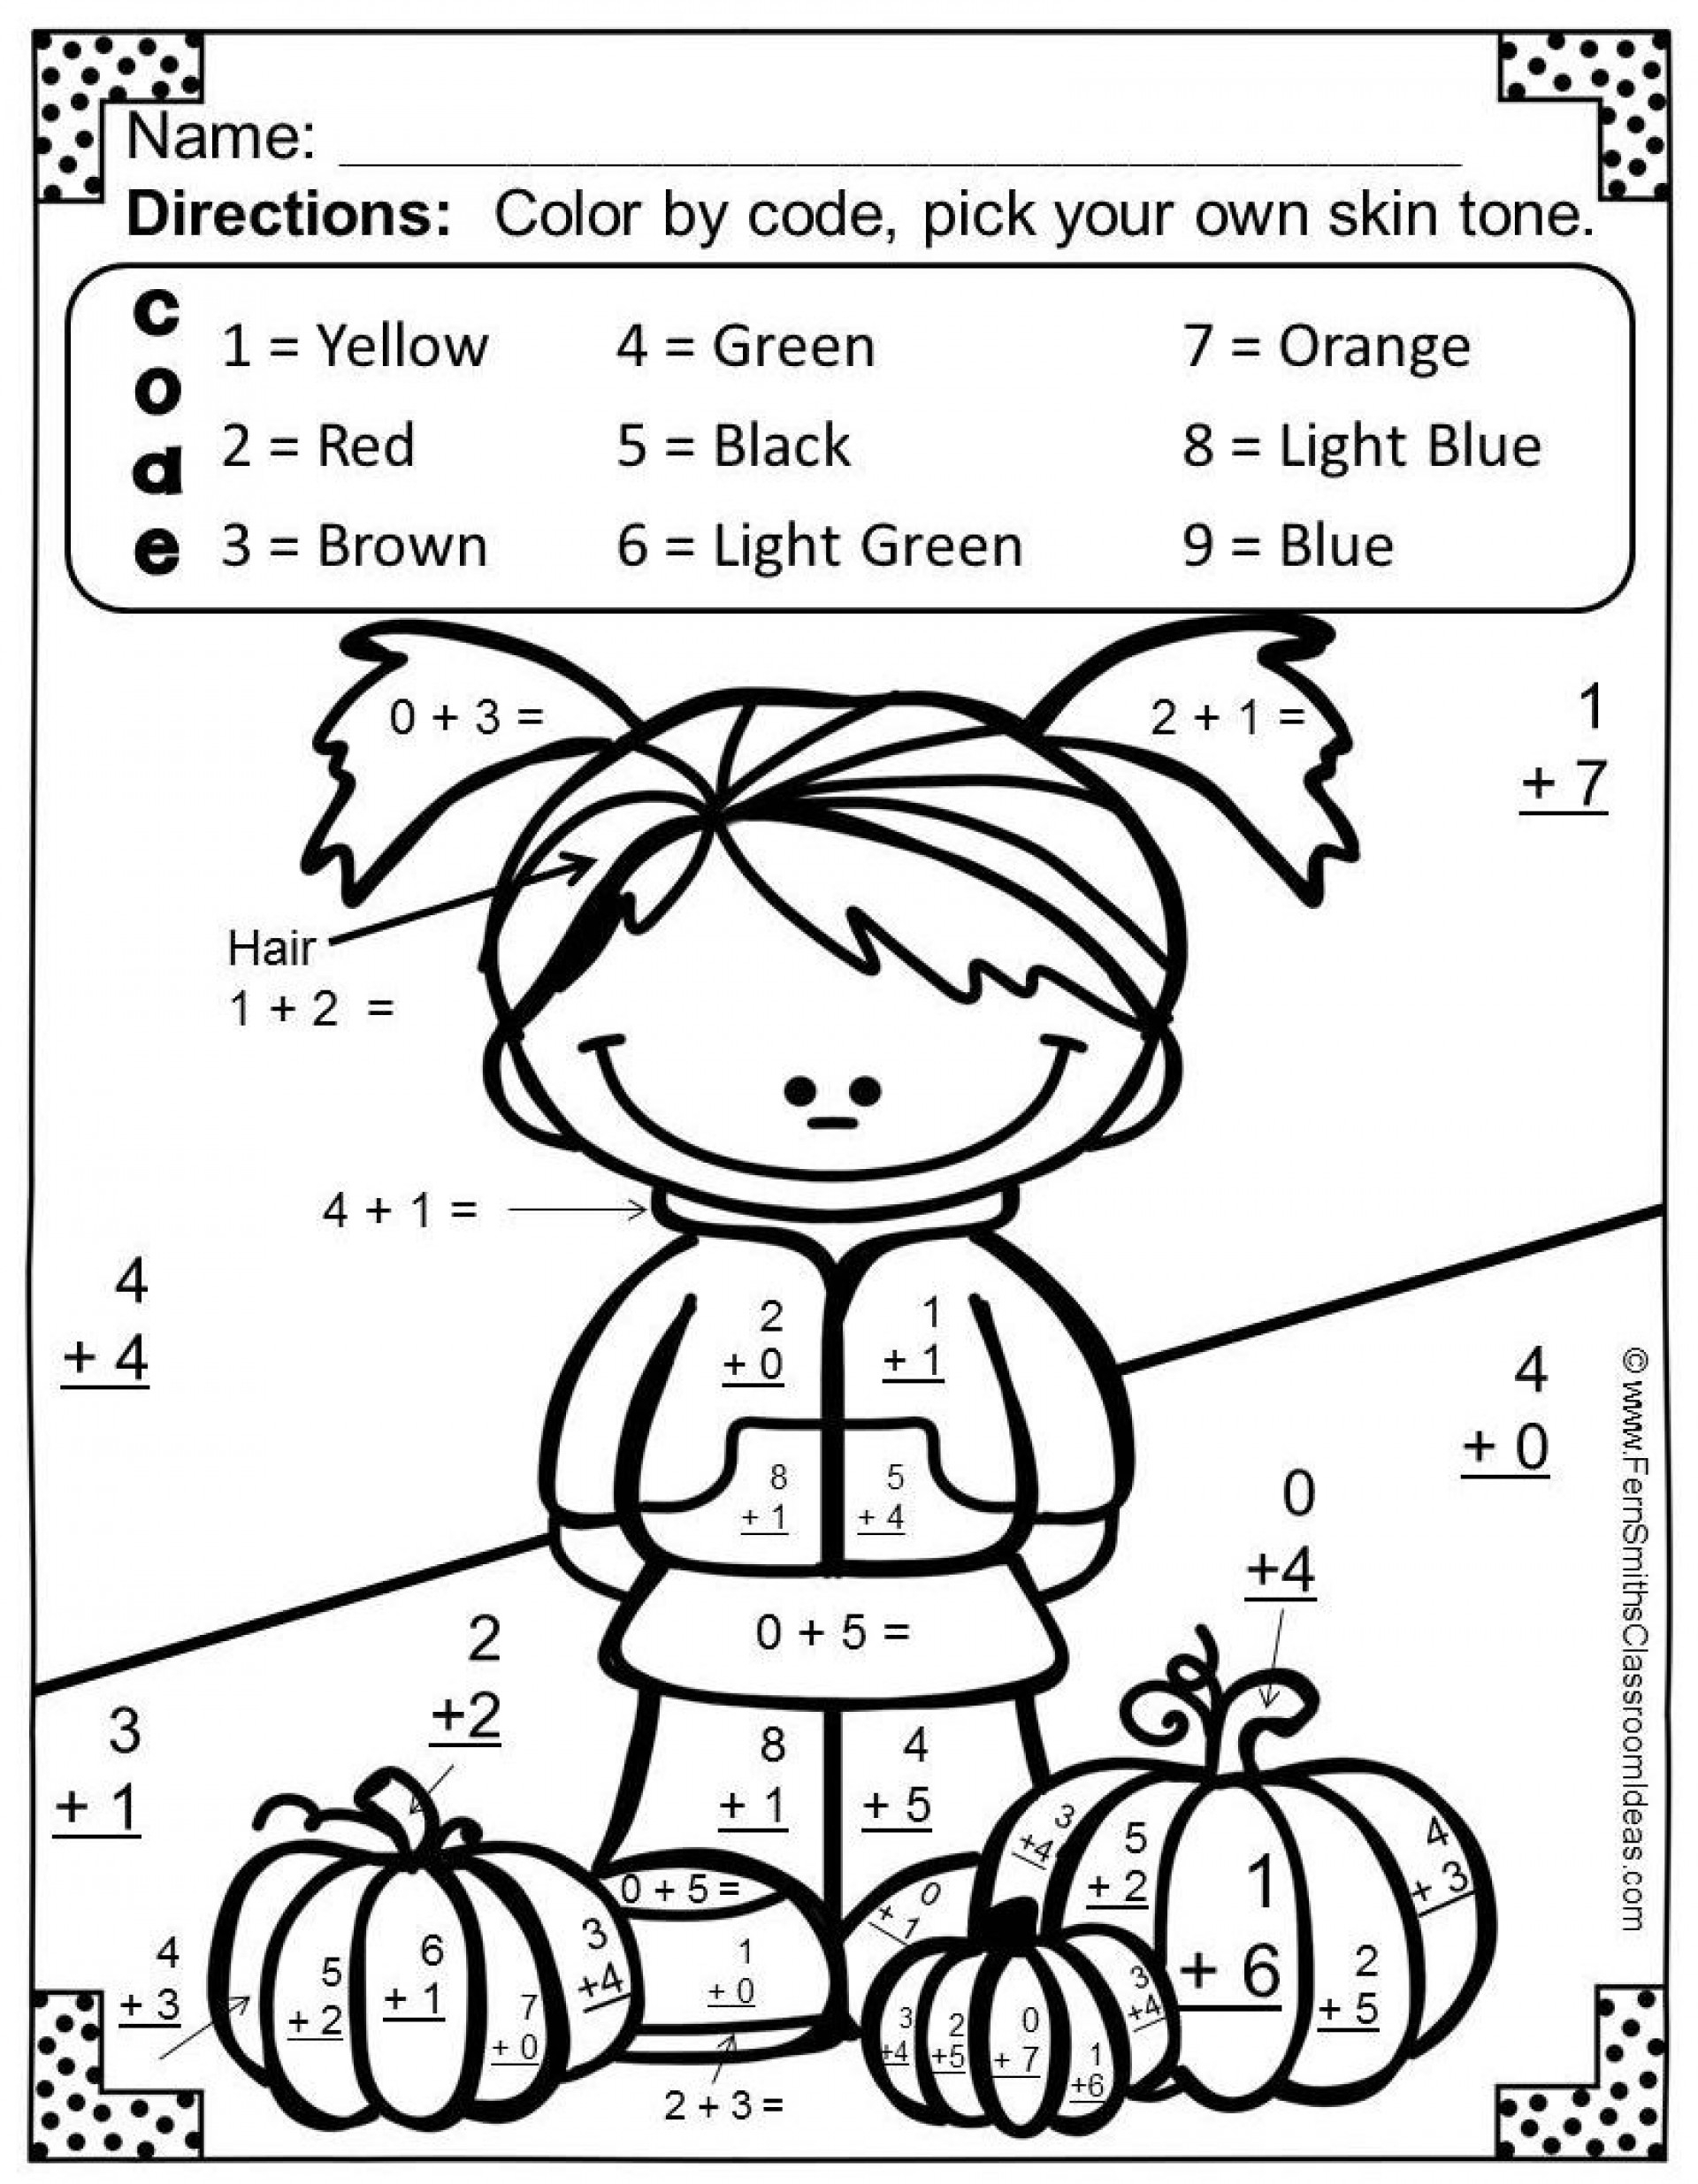 Math Coloring Worksheets 1St Grade 2Nd Pages Printable Addition For inside 1St Grade Math Coloring Sheets